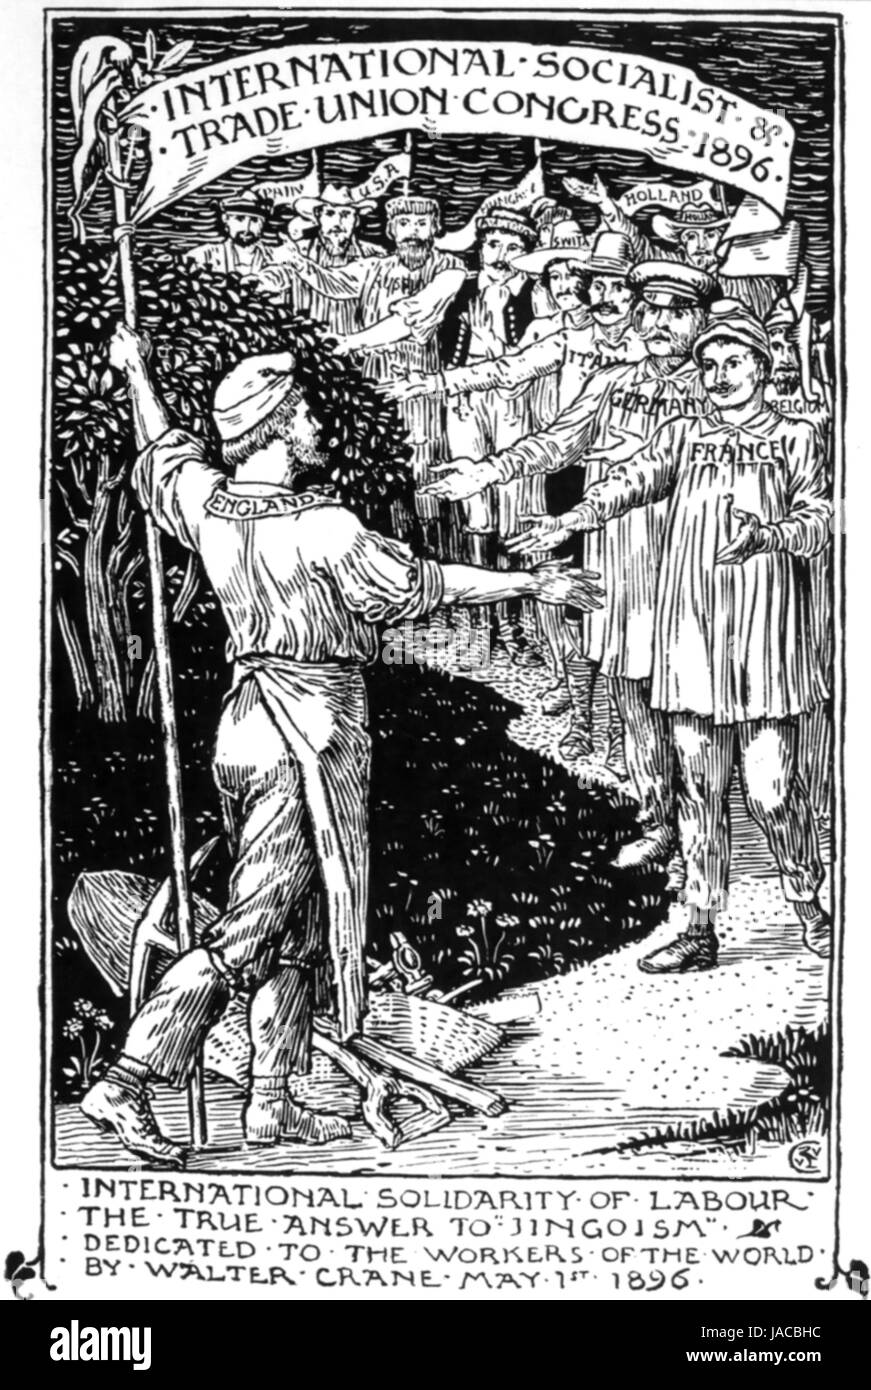 WALTER CRANE (1845-1915) English artist. Engraving from his 'Cartons for the Cause 1886-1896' published - Stock Image